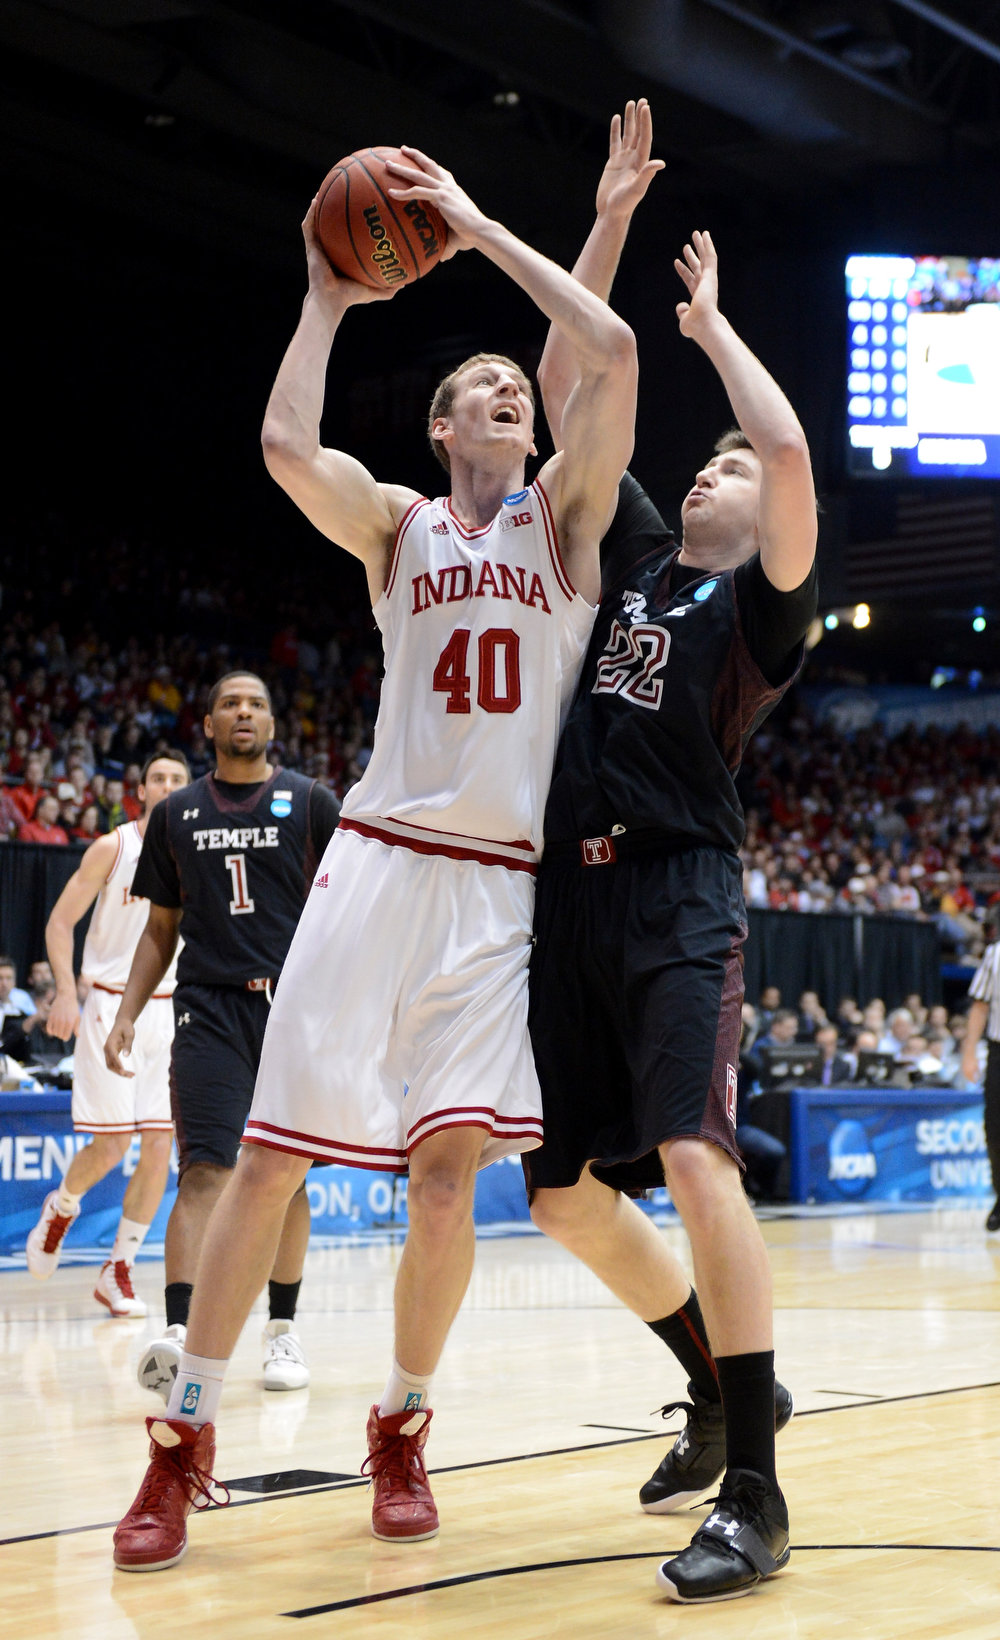 . Cody Zeller #40 of the Indiana Hoosiers drives to the basket against Jake O\'Brien #22 of the Temple Owls in the first half during the third round of the 2013 NCAA Men\'s Basketball Tournament at UD Arena on March 24, 2013 in Dayton, Ohio.  (Photo by Jason Miller/Getty Images)